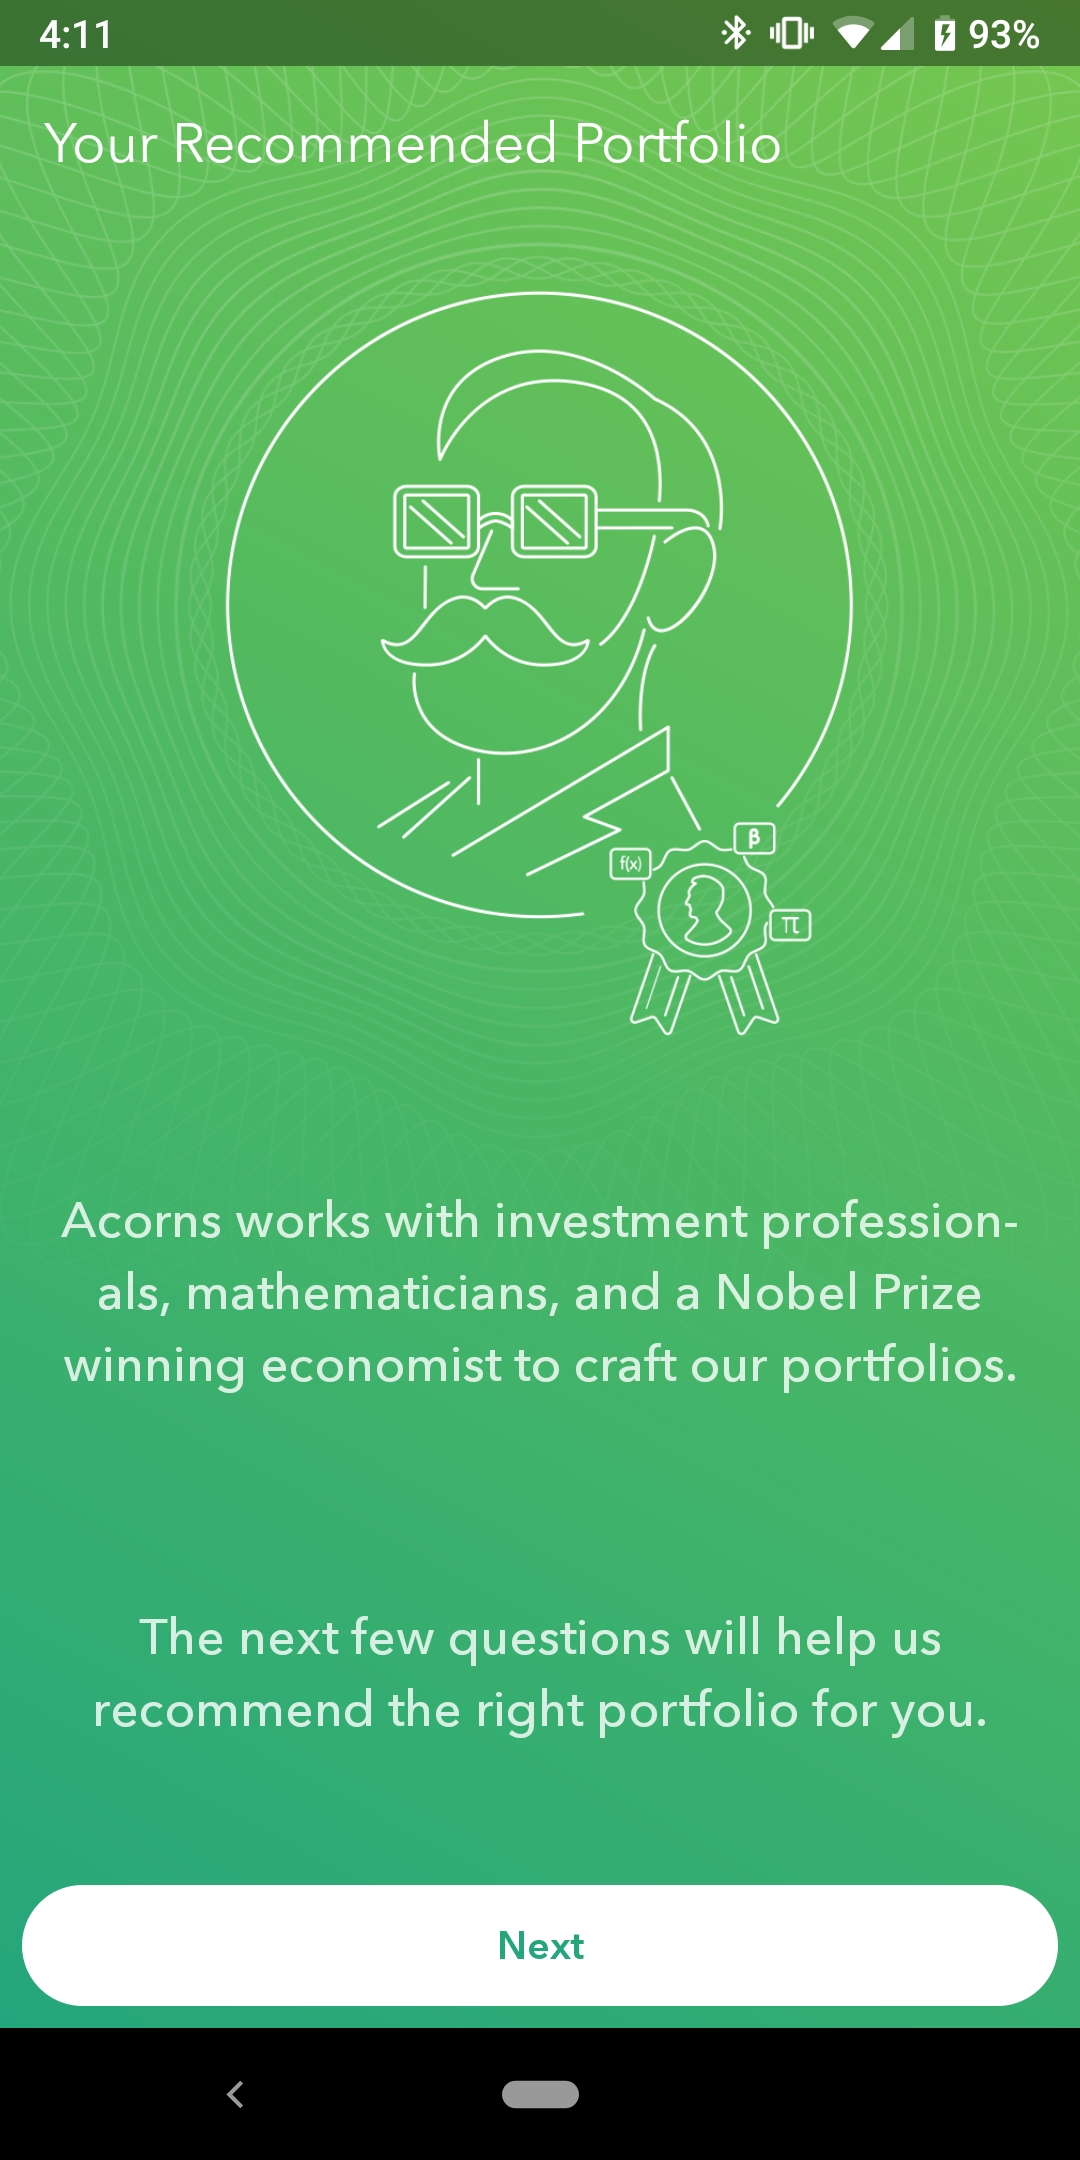 Acorn's mobile app then recommends a portfolio in their mobile app